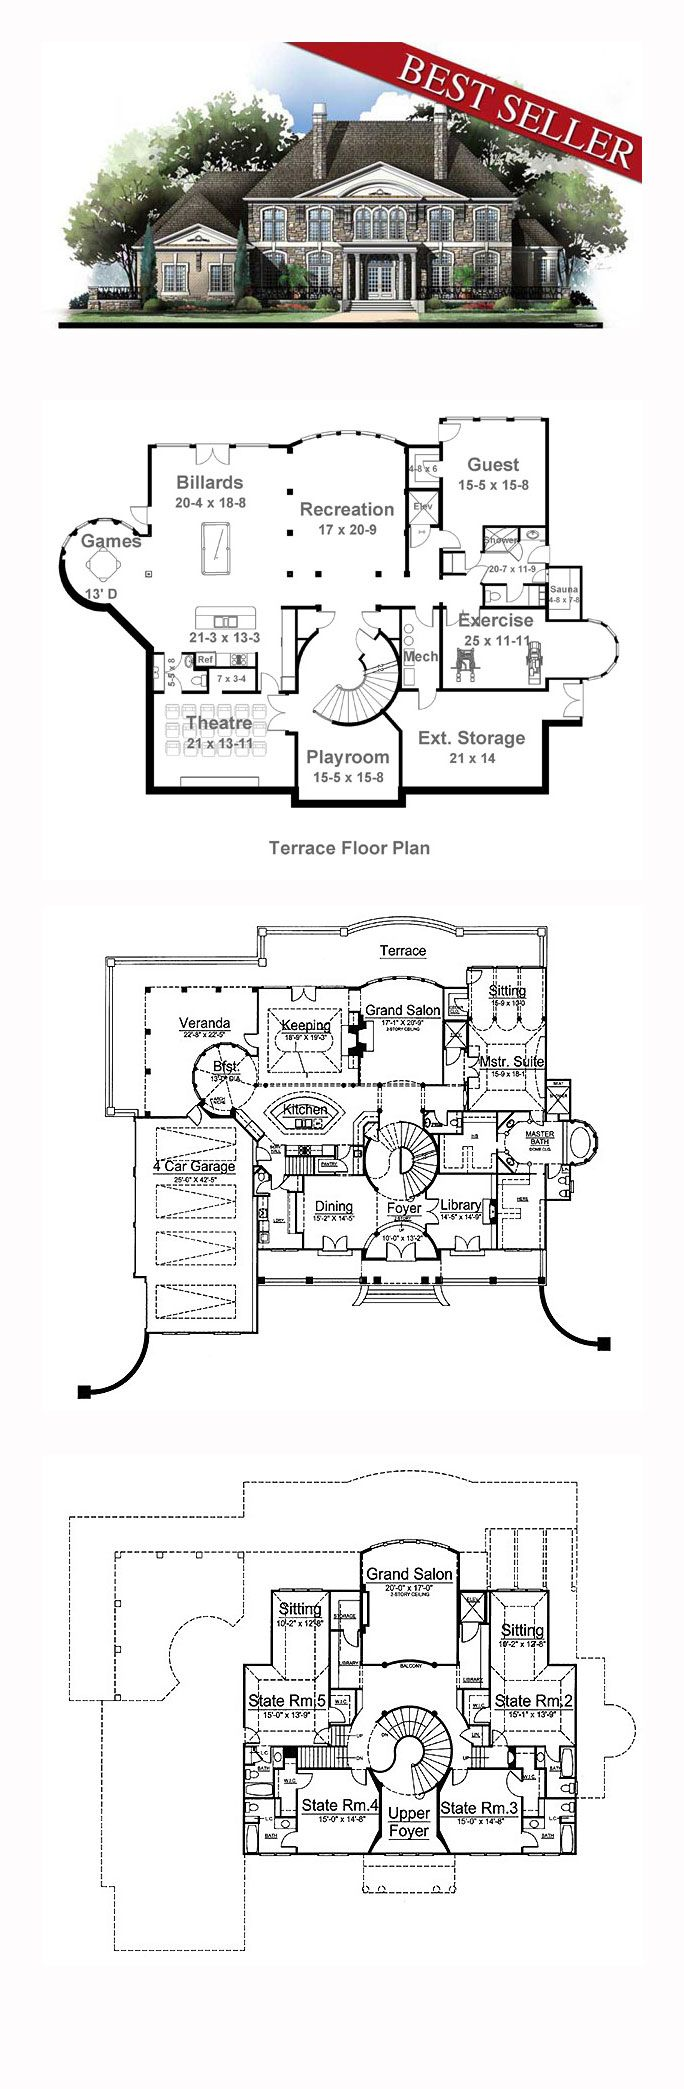 Greek Revival Style House Plan 72155 With 5 Bed 7 Bath 4 Car Garage Luxury House Plans House Blueprints House Plans